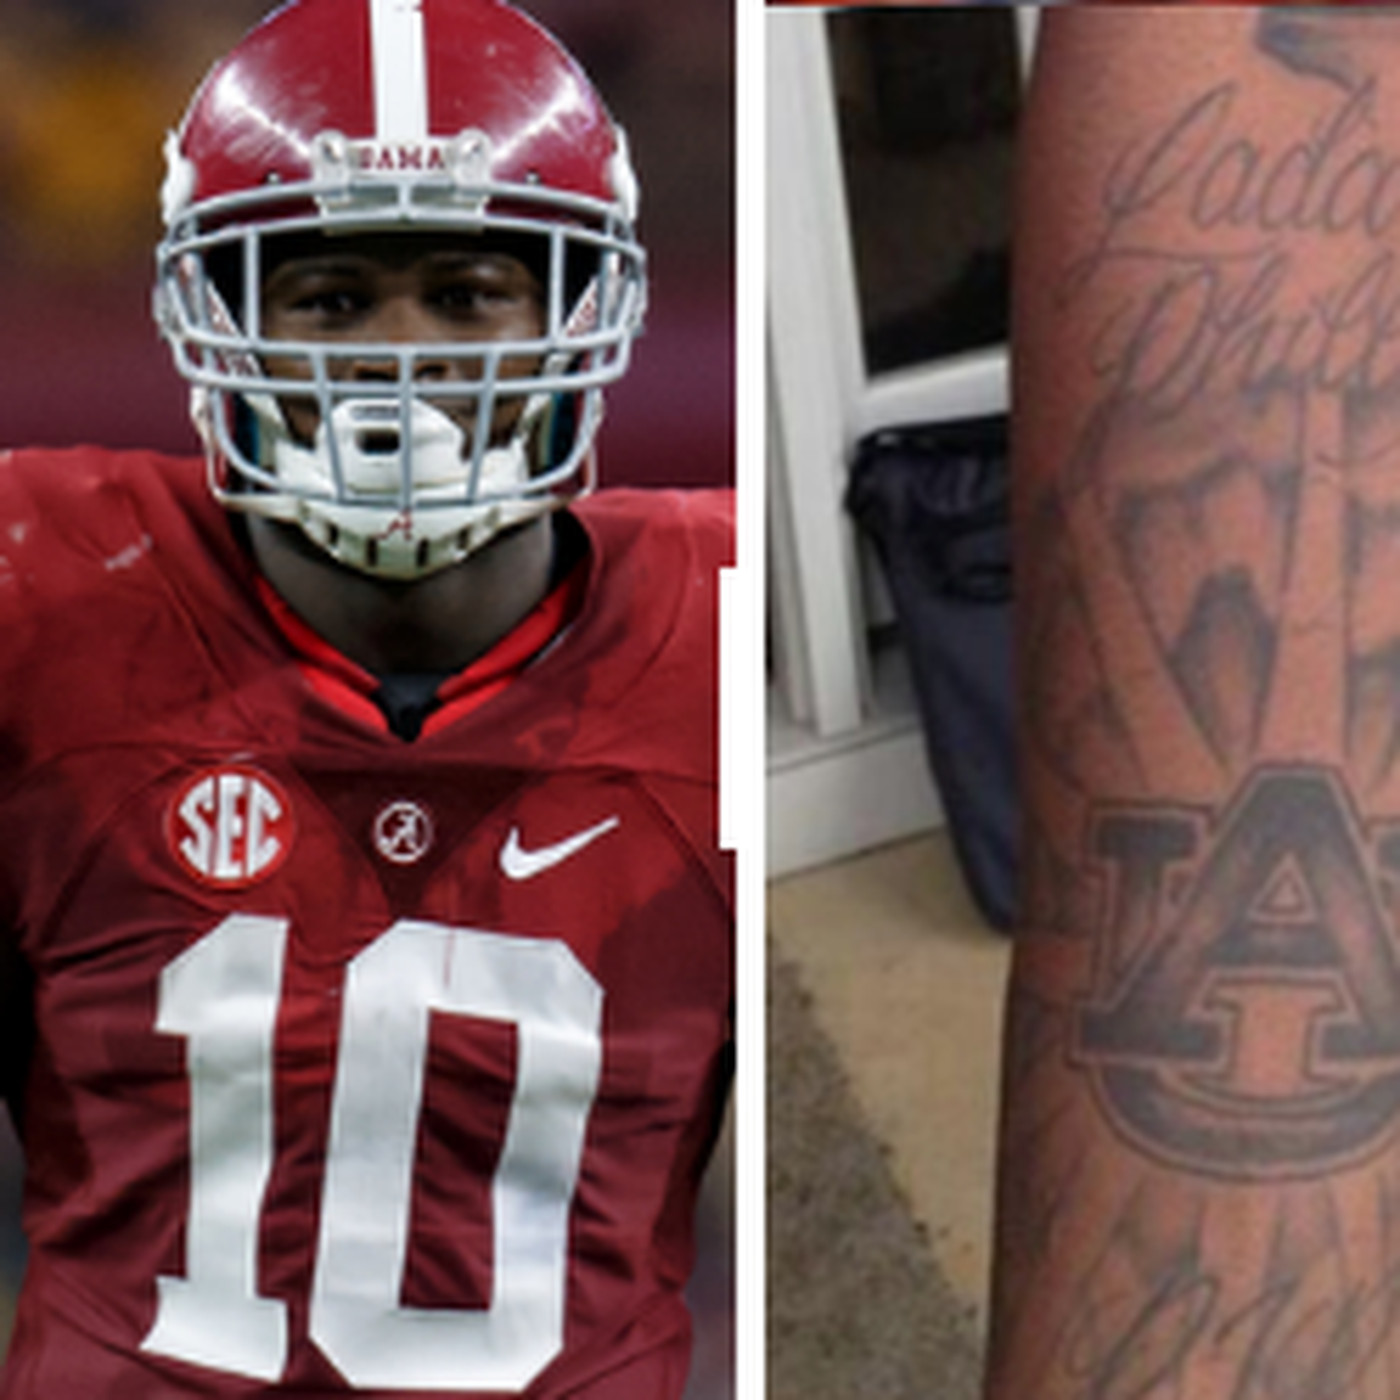 b0d25106c Why Alabama s Reuben Foster has an archrival Auburn tattoo - SBNation.com